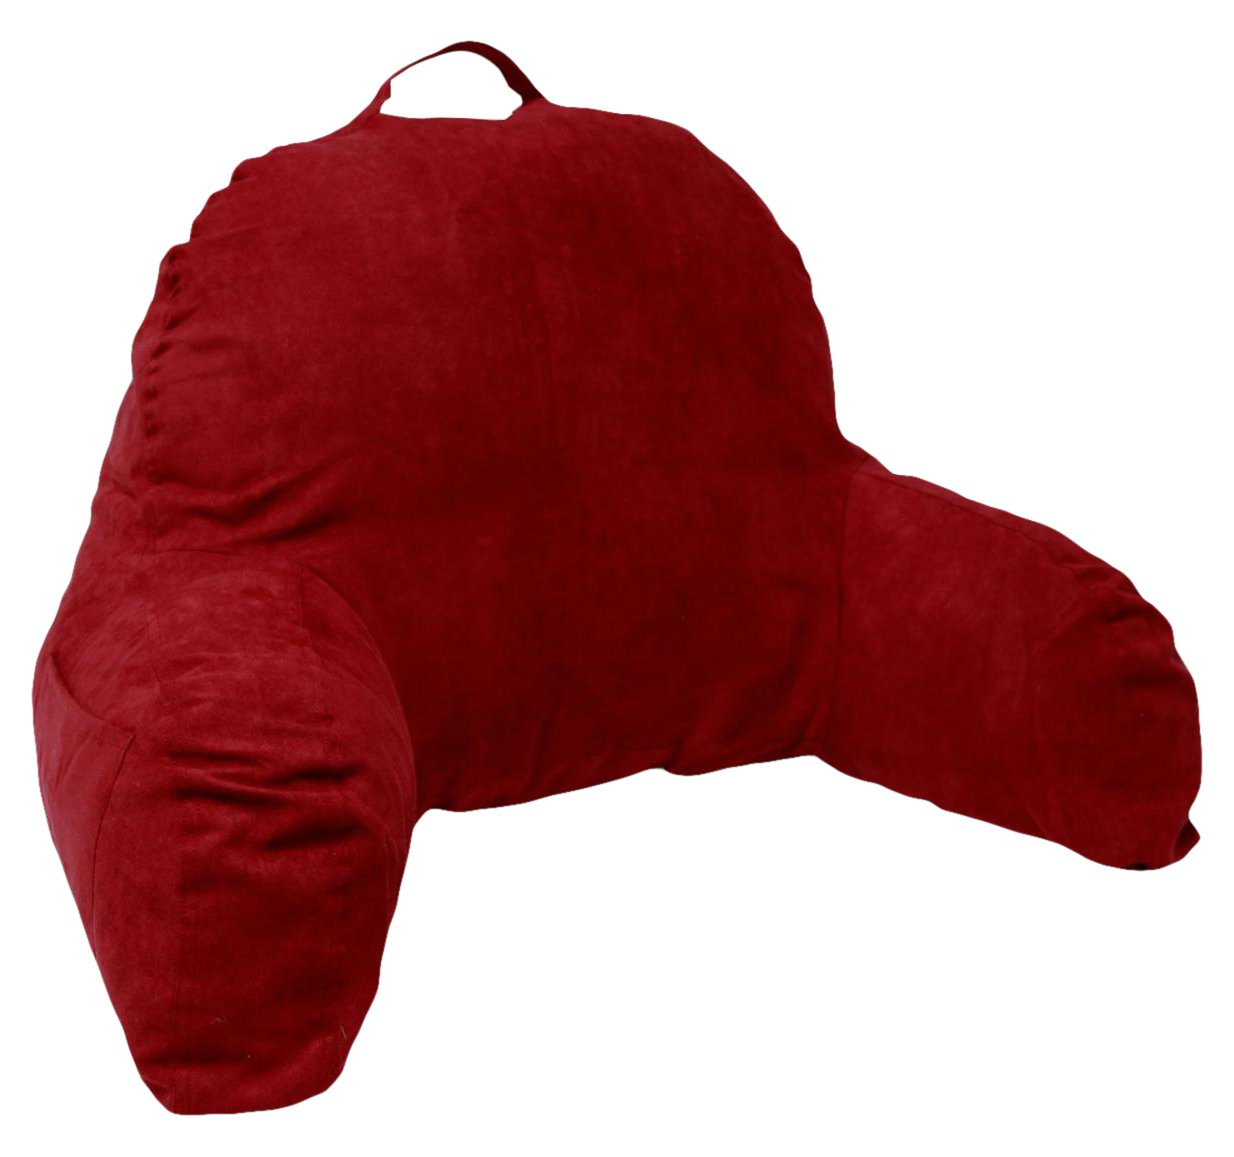 Bed pillow chair - Microsuede Bedrest Pillow Red Best Bed Rest Pillows With Arms For Reading In Bed